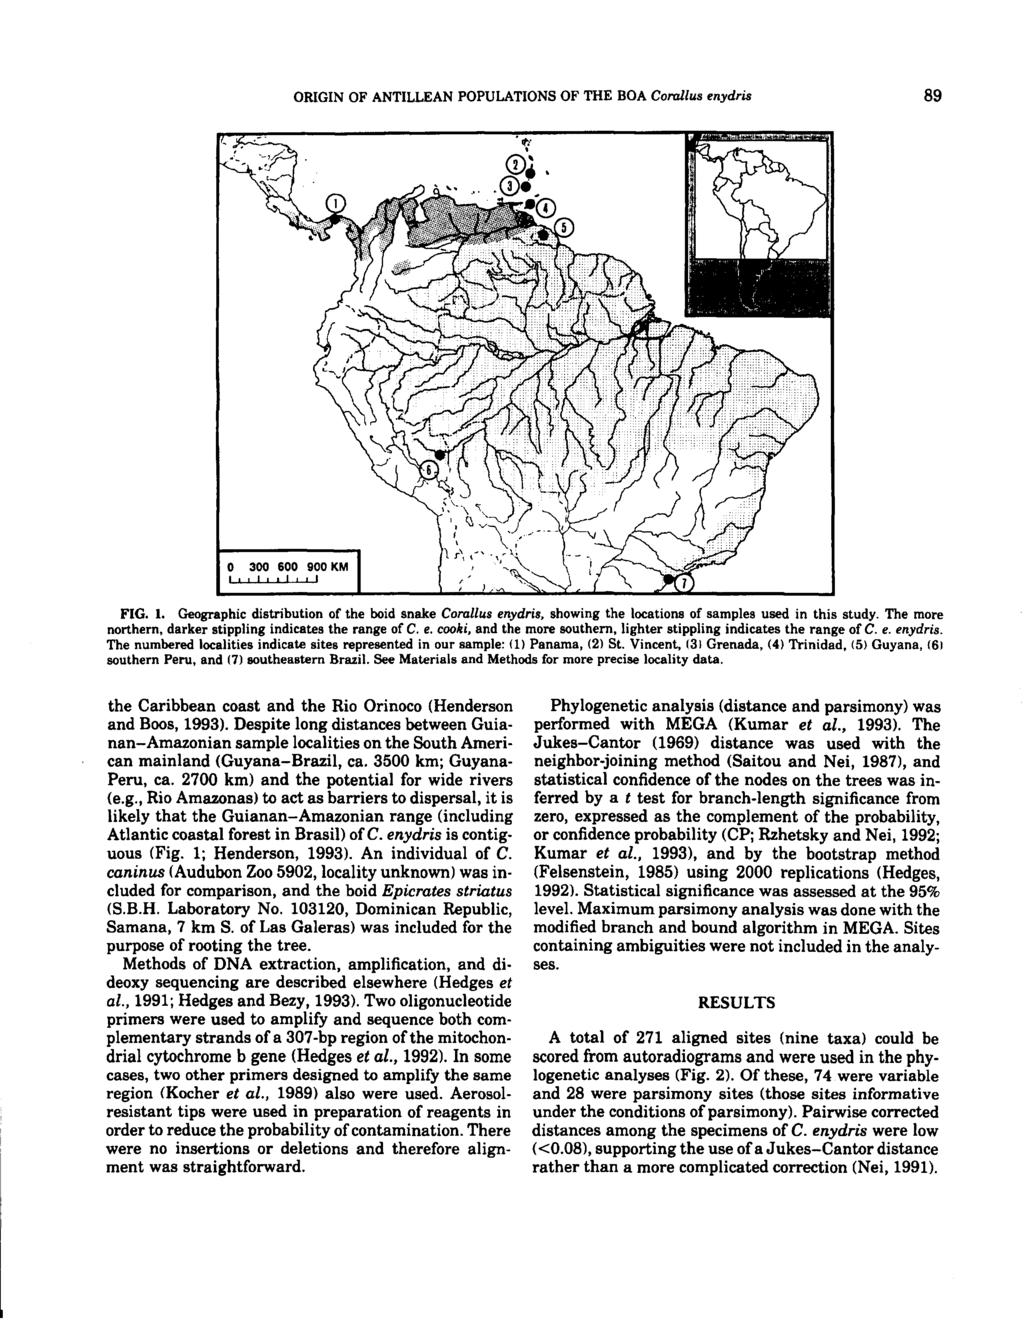 ORIGIN OF ANTILLEAN POPULATIONS OF THE BOA Corallus enydris 89 o 300 600 900 KM 1'1 1,1 I I I I FIG. 1. Geographic distribution of the boid snake Corallus enydris, showing the locations of samples used in this study.